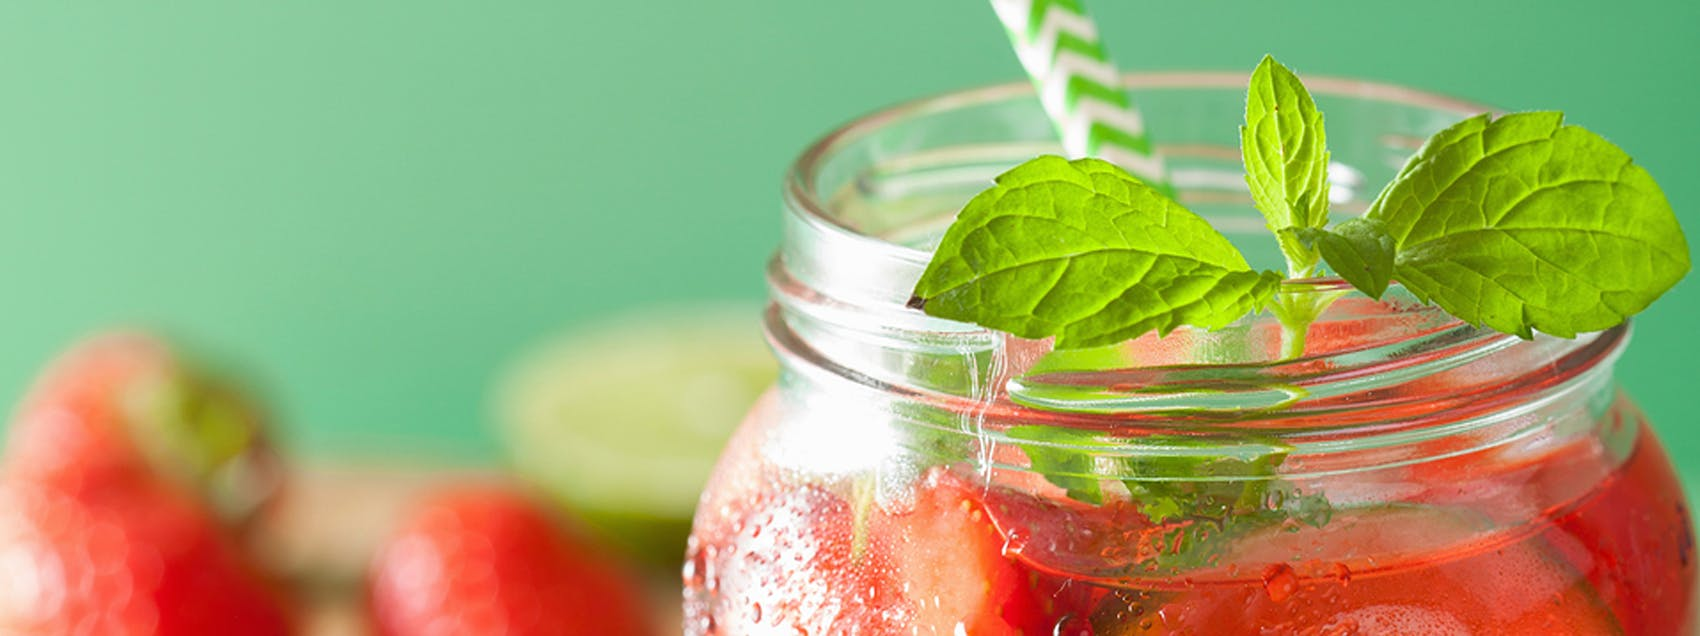 Strawberry Basil Fizz